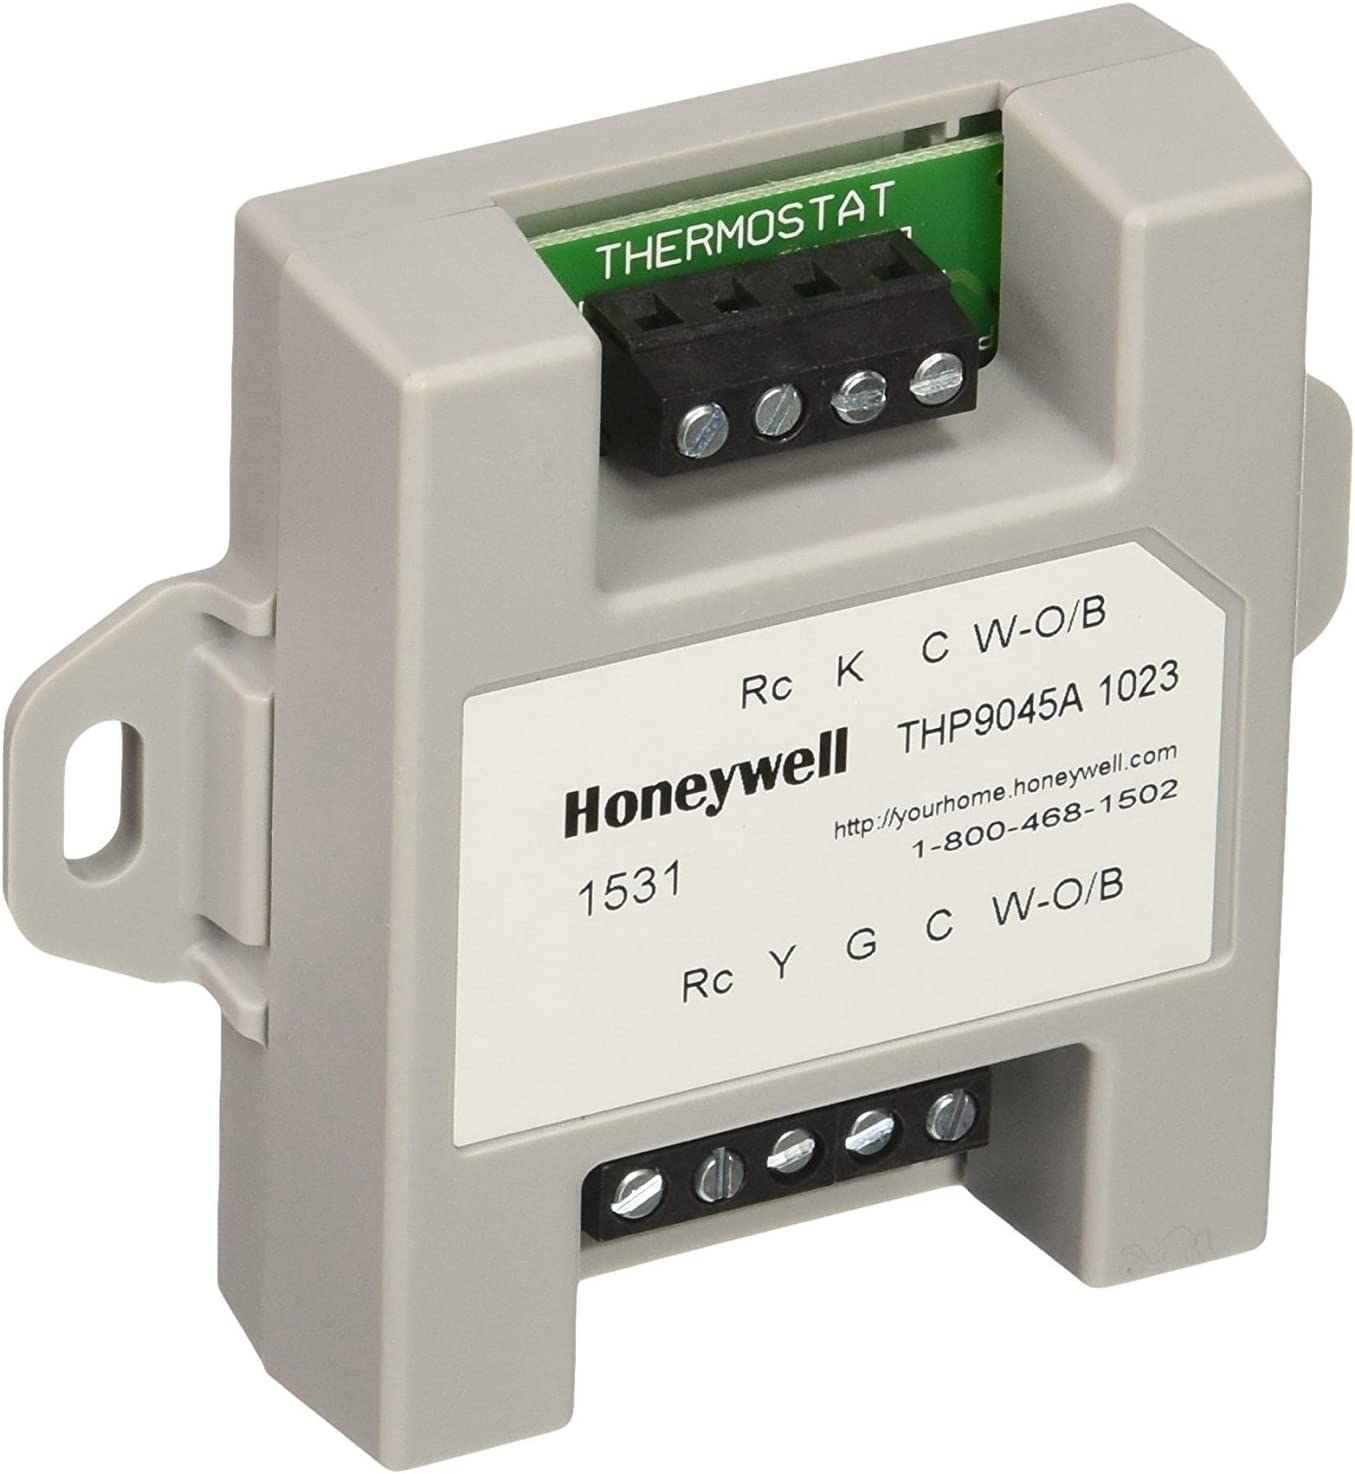 5 Wire Old Honeywell Thermostat Wiring Diagram from images-na.ssl-images-amazon.com